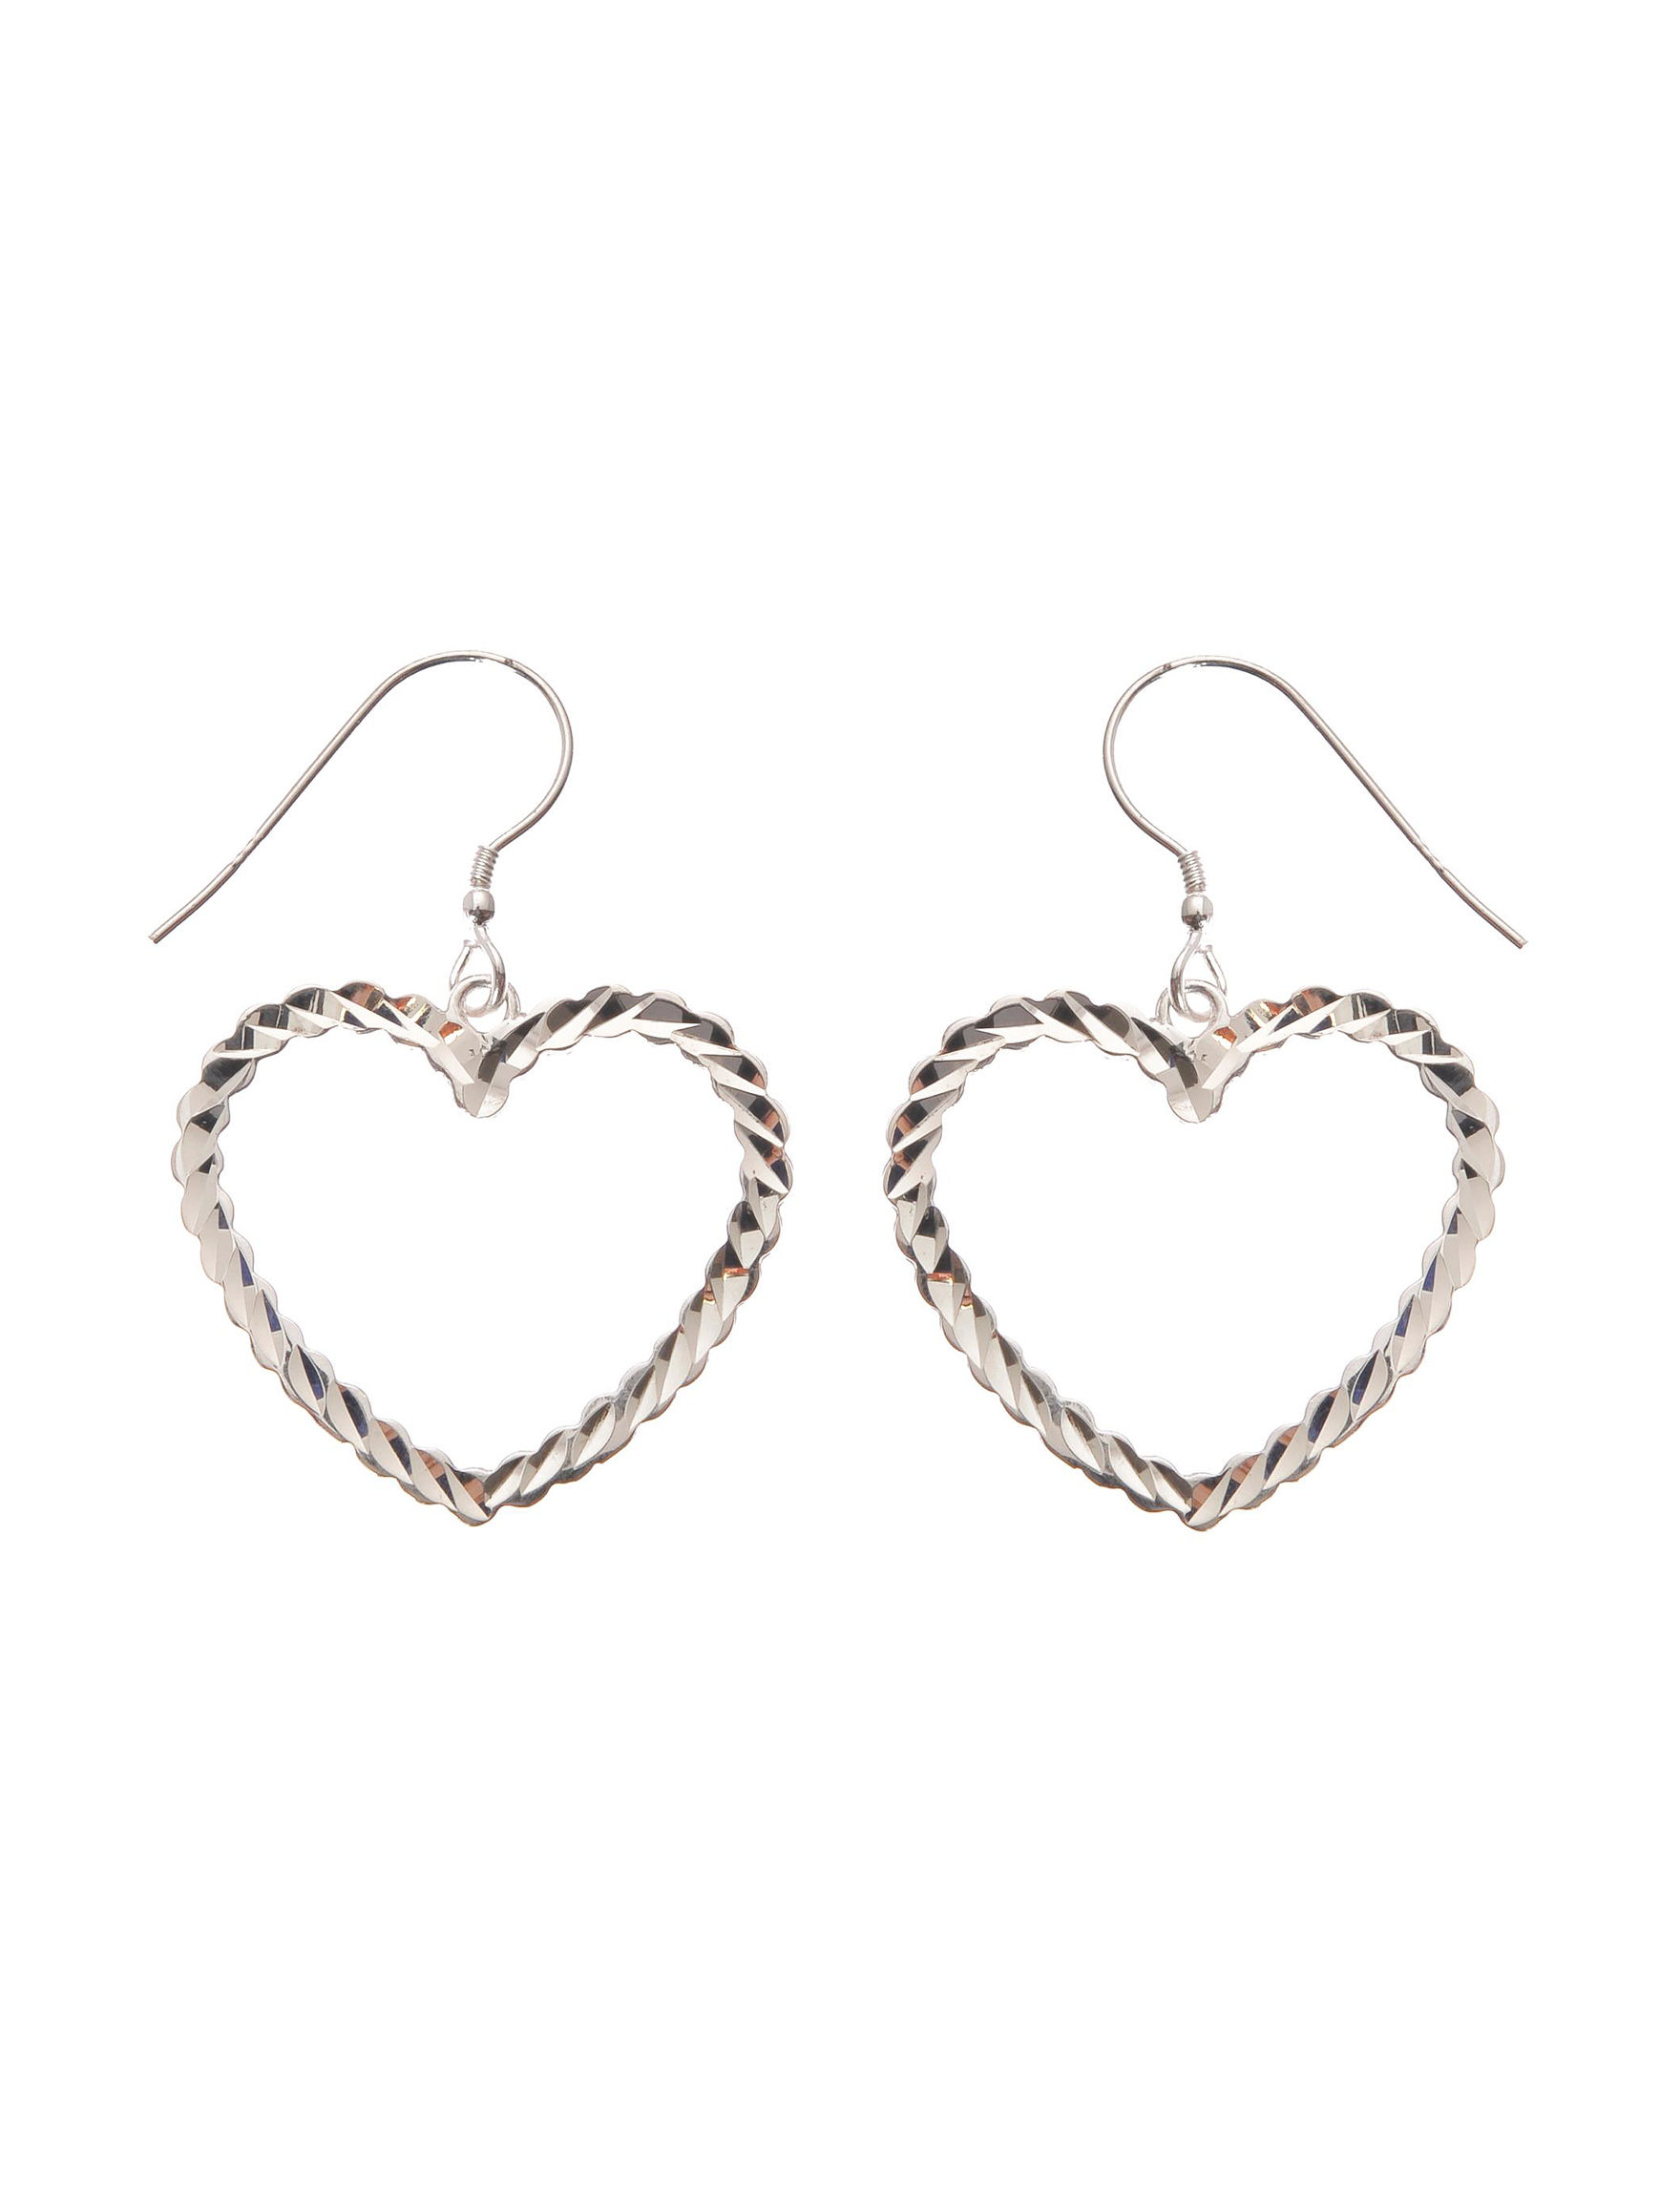 L & J White / Silver Drops Earrings Fine Jewelry